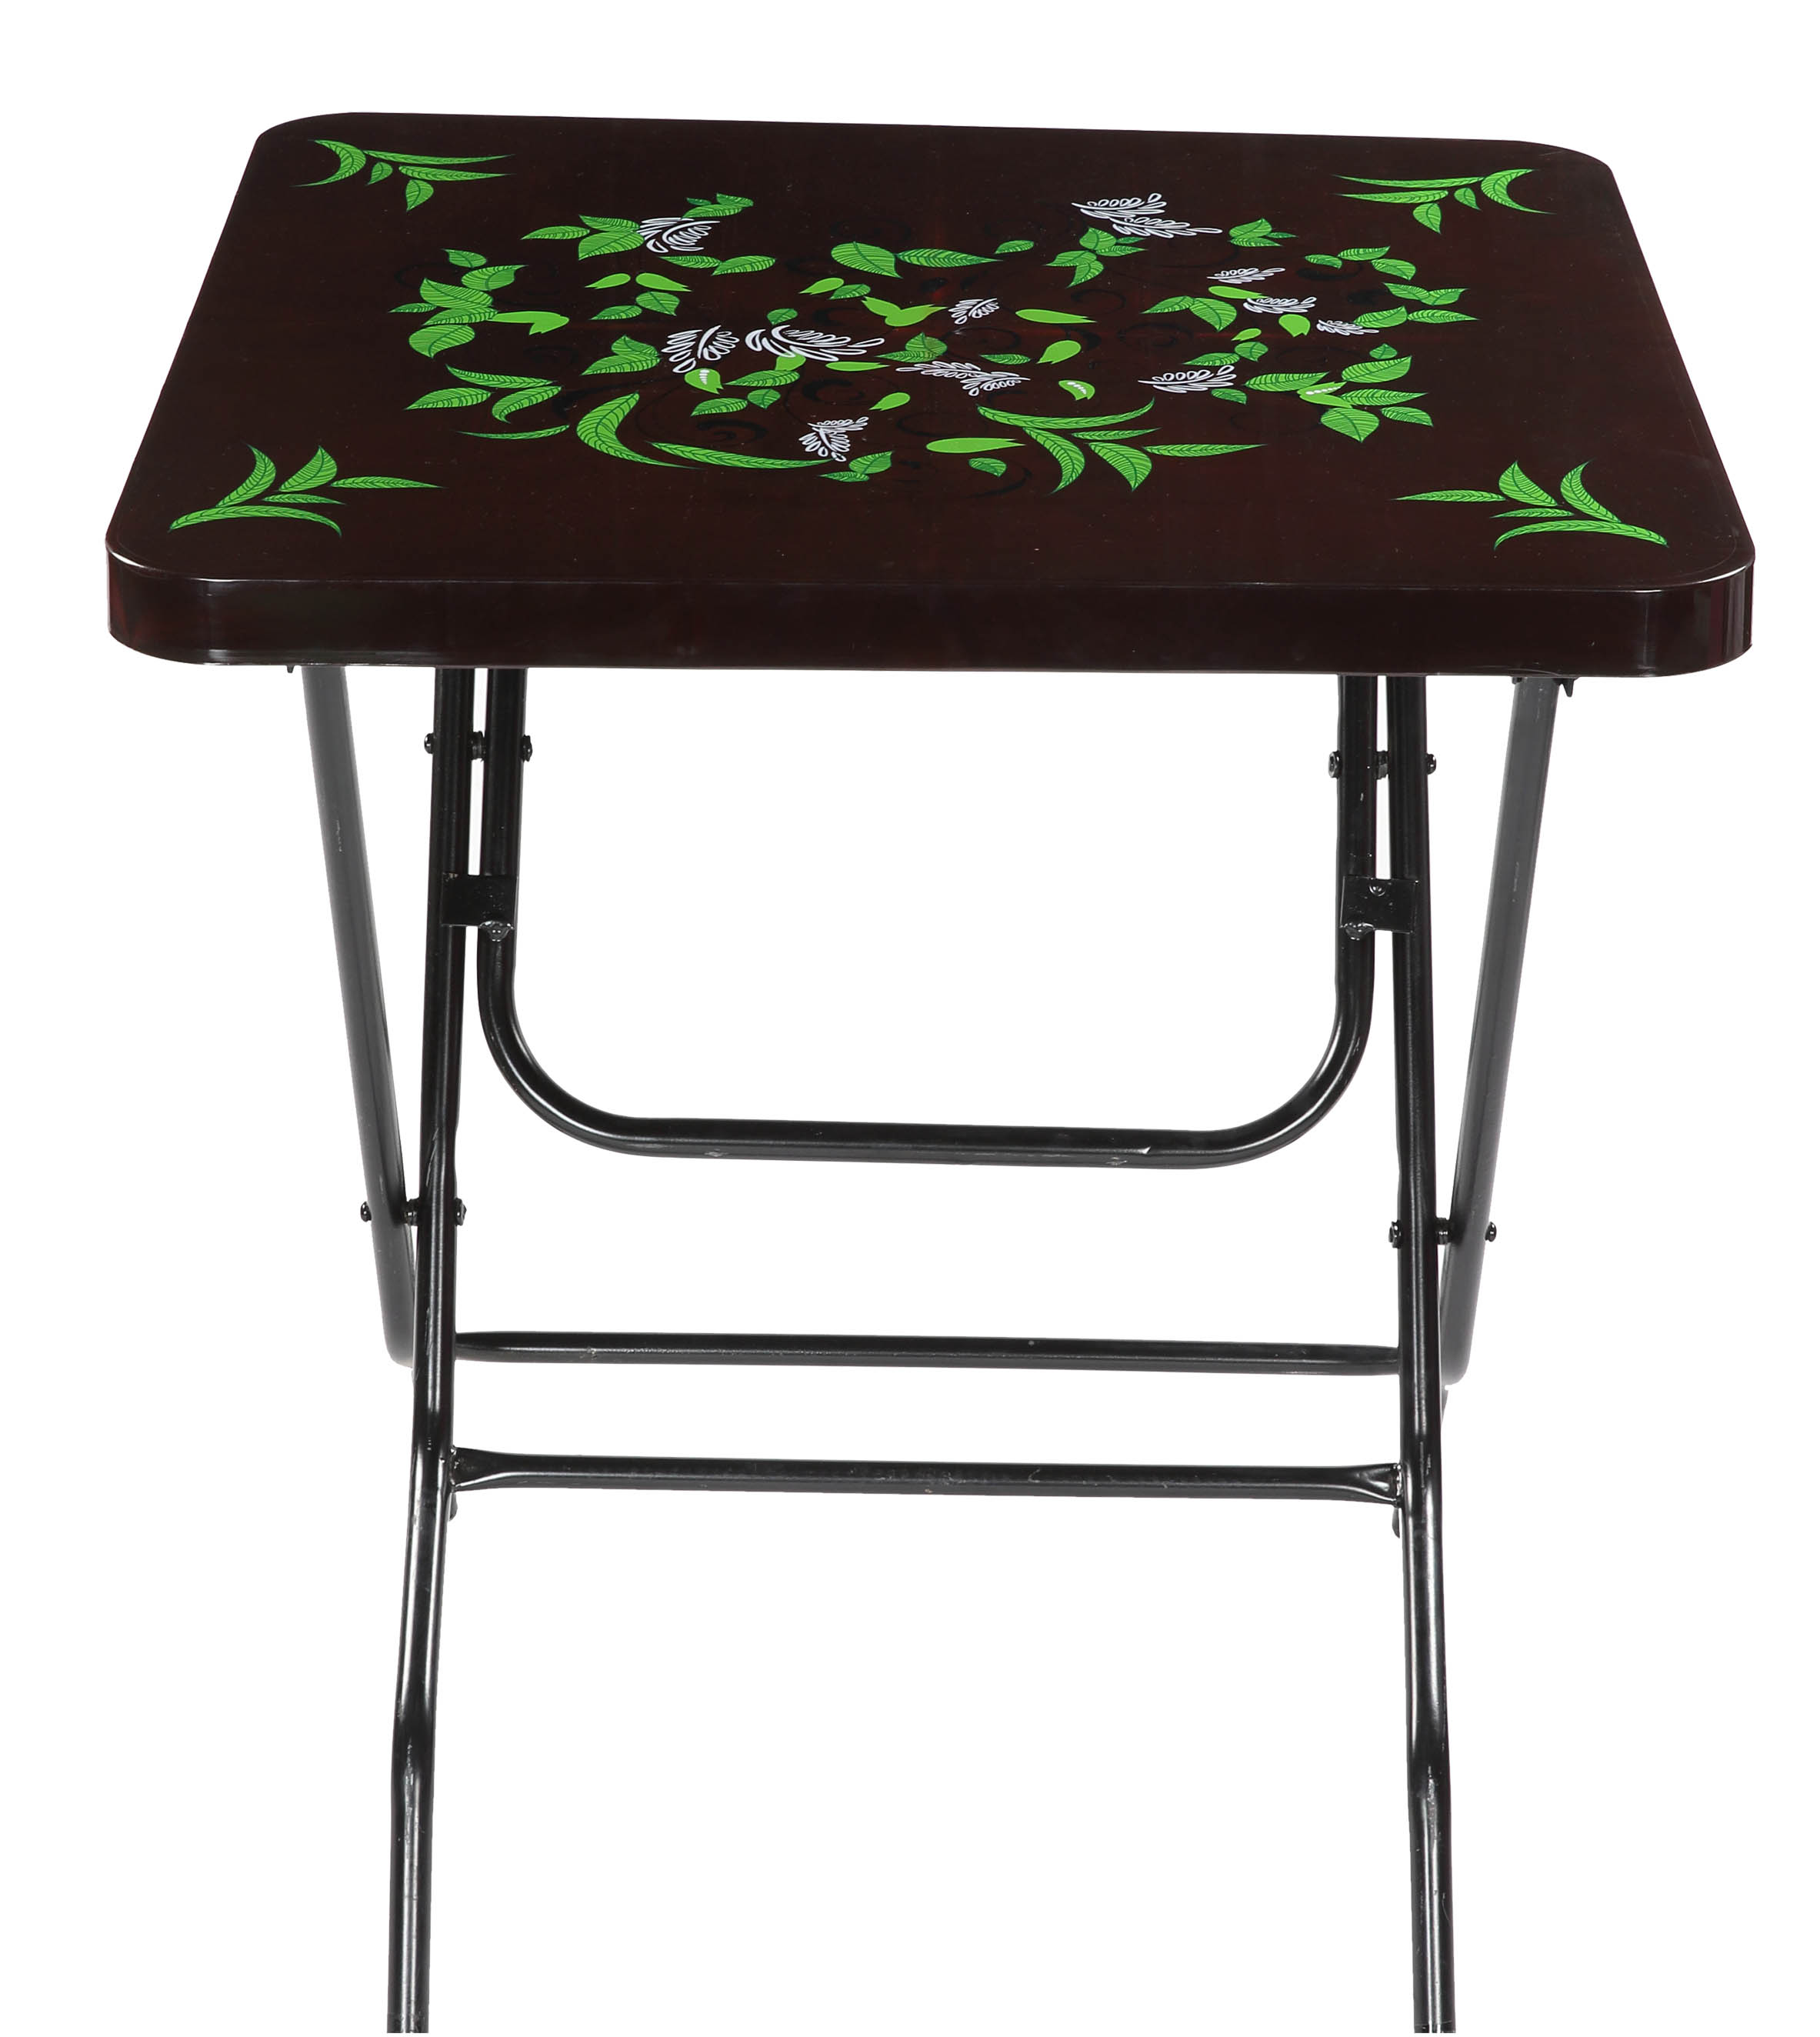 RFL Plastic Table: Get RFL Plastic Table Price in Bangladesh